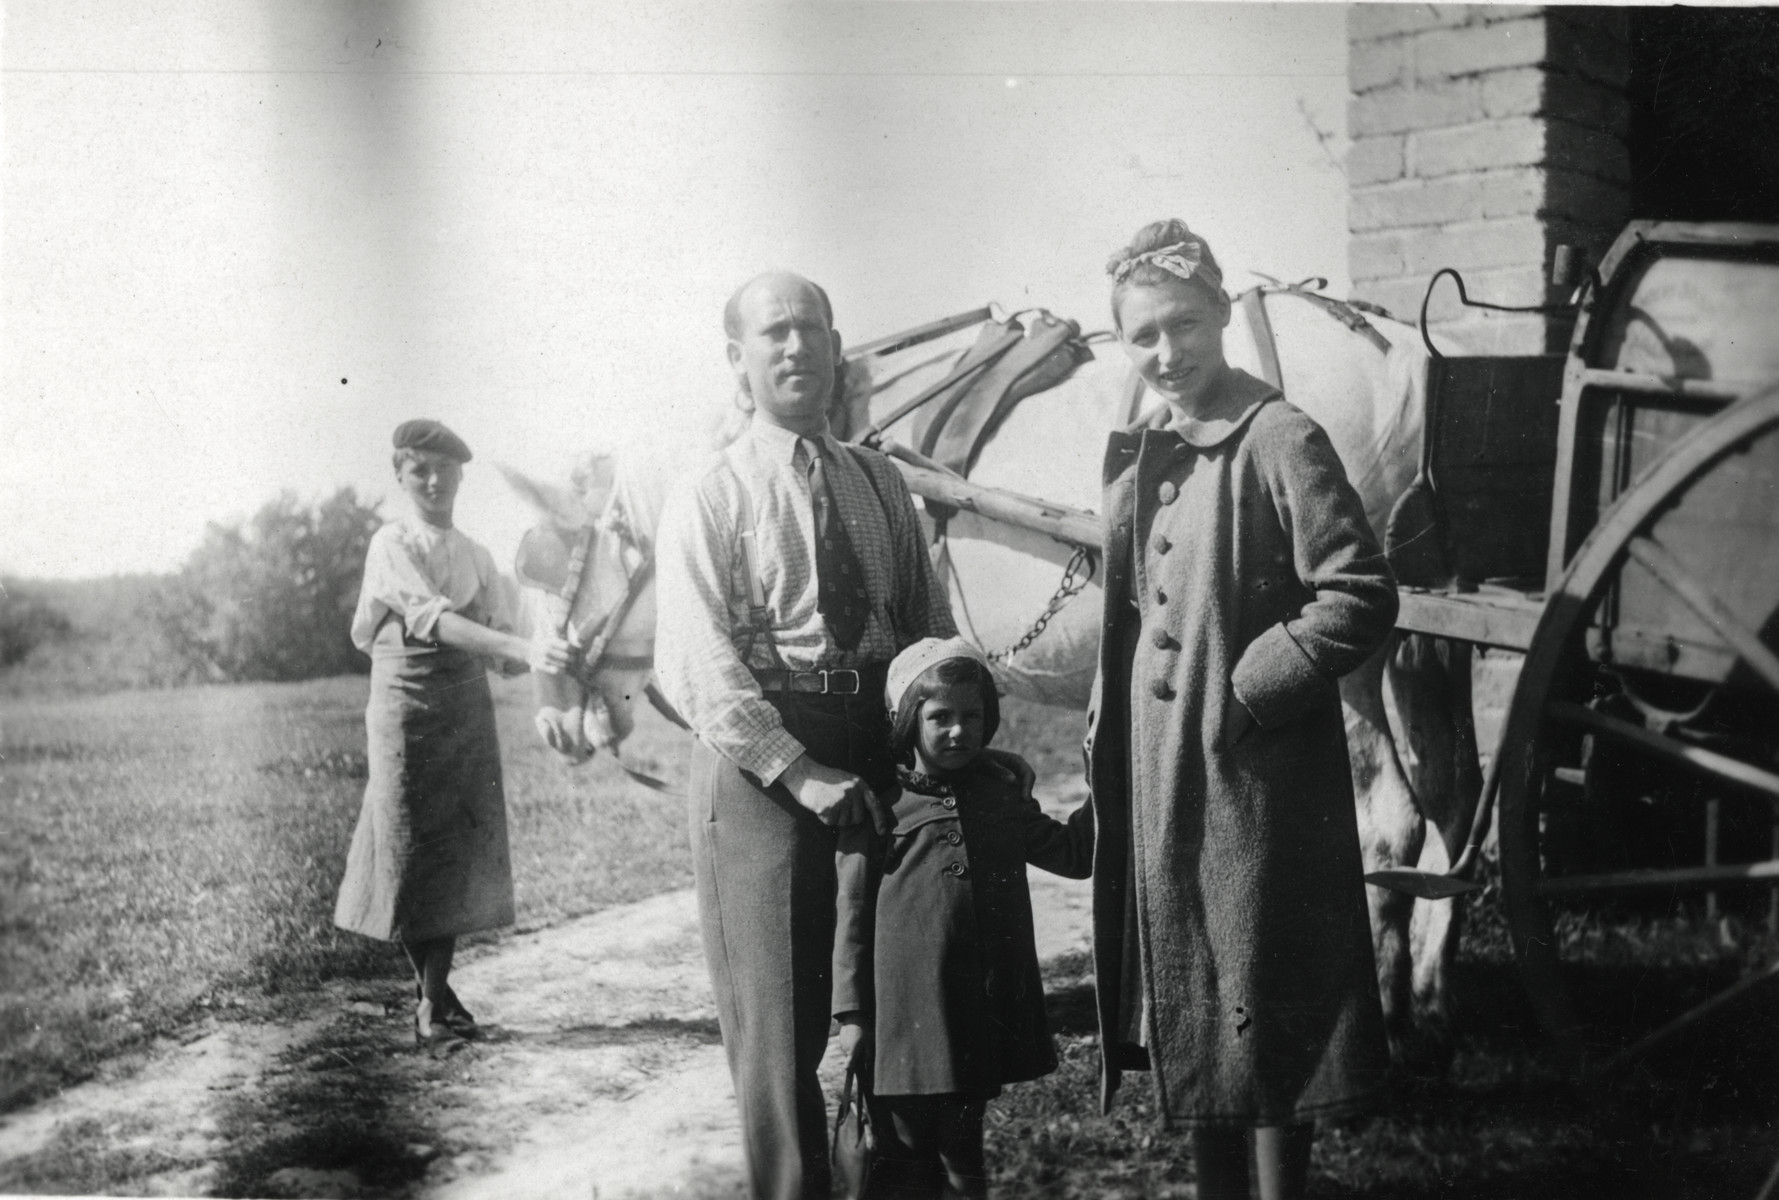 Group portrait  of Beatrice Heffes, her mother Rosa Moses, her cousin Gerard Horst Meyerfeld, and her uncle Sygmund Friedman, then visiting from Lyon. They are posing near a horse-drawn carriage, probably in front of a stable. Gerard is holding the horse's bit.